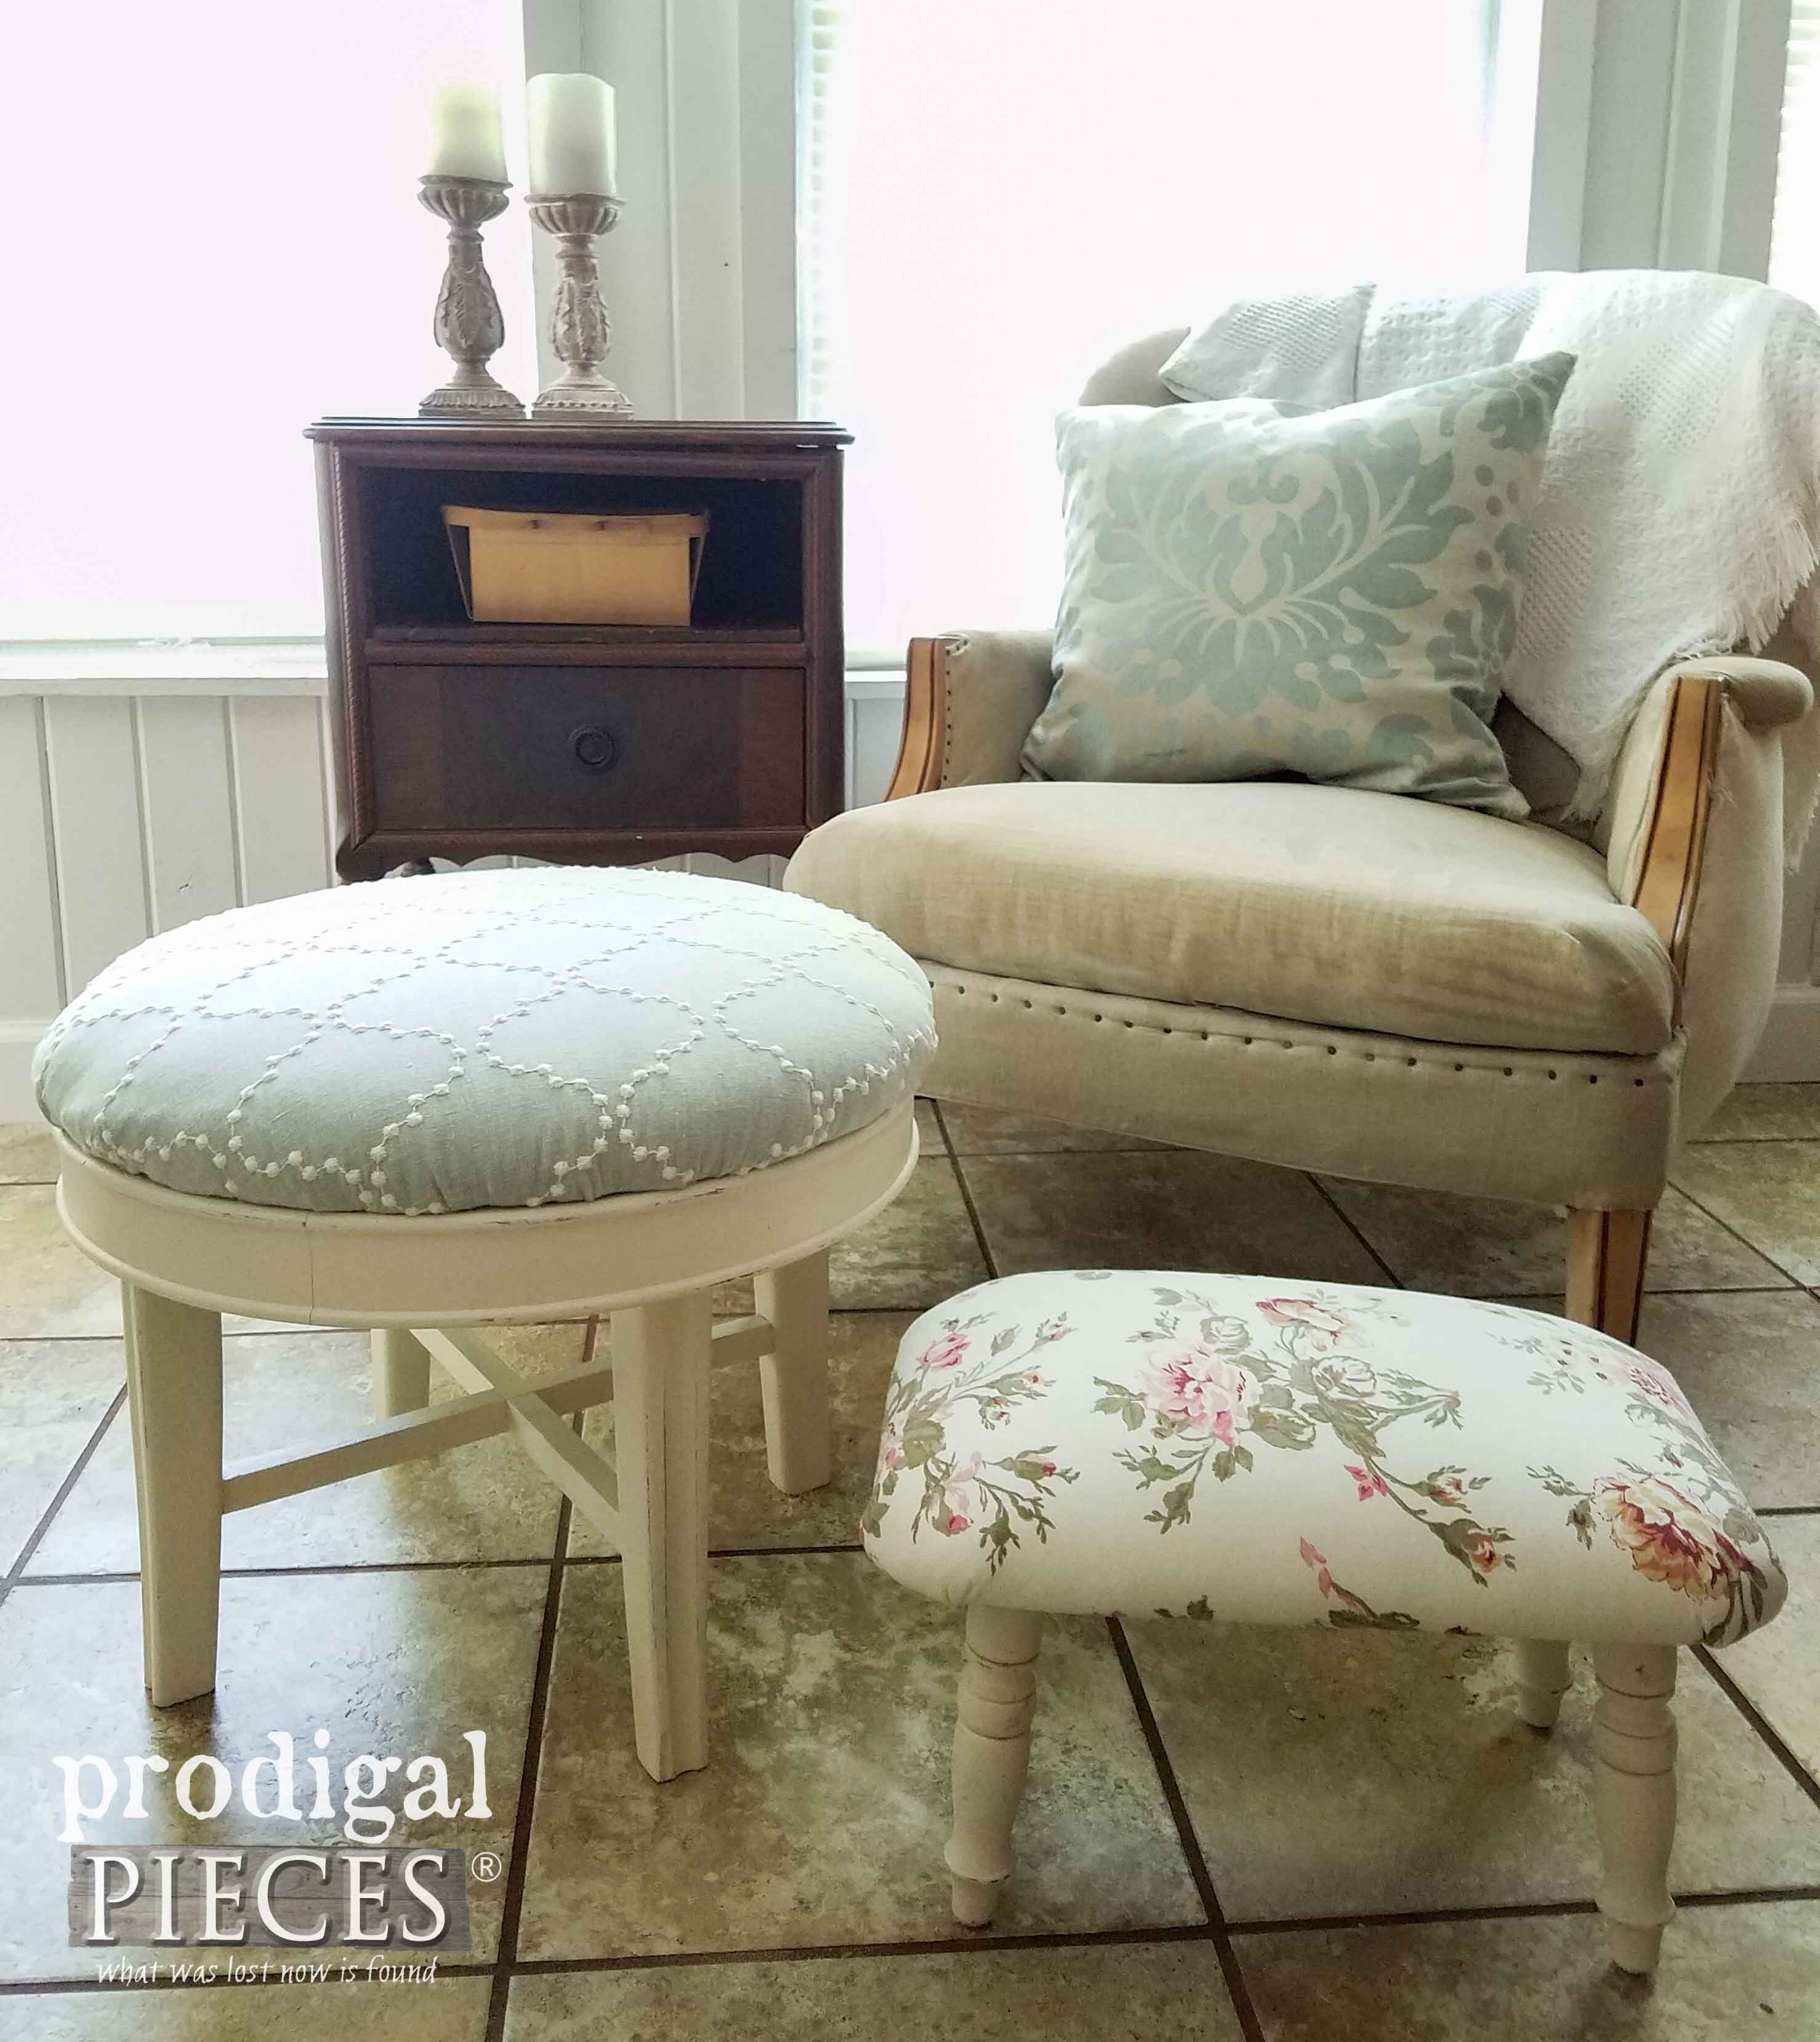 Pair of Vintage Footstools Refreshed with new upholstery and paint by Prodigal Pieces | prodigalpieces.com